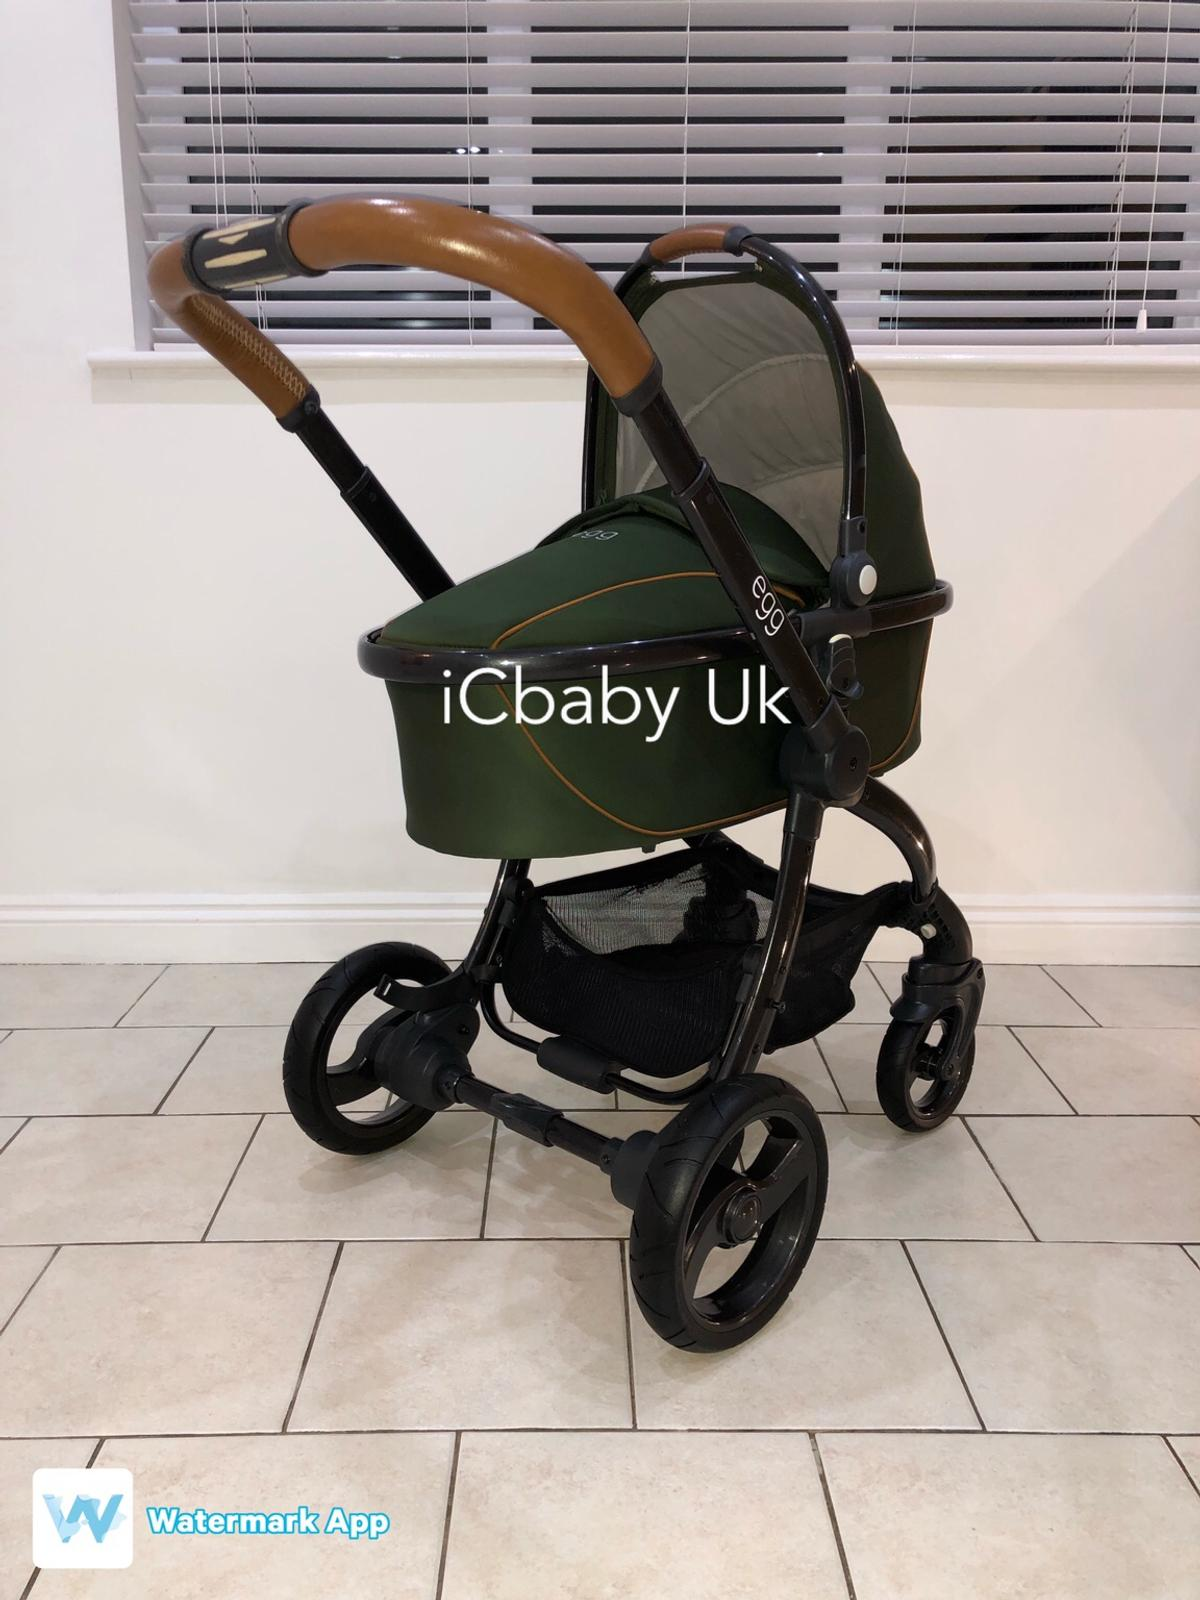 Egg Pram Replacement Wheels Babystyle Egg Pram In Forest Green In Cv23 Rugby For 700 00